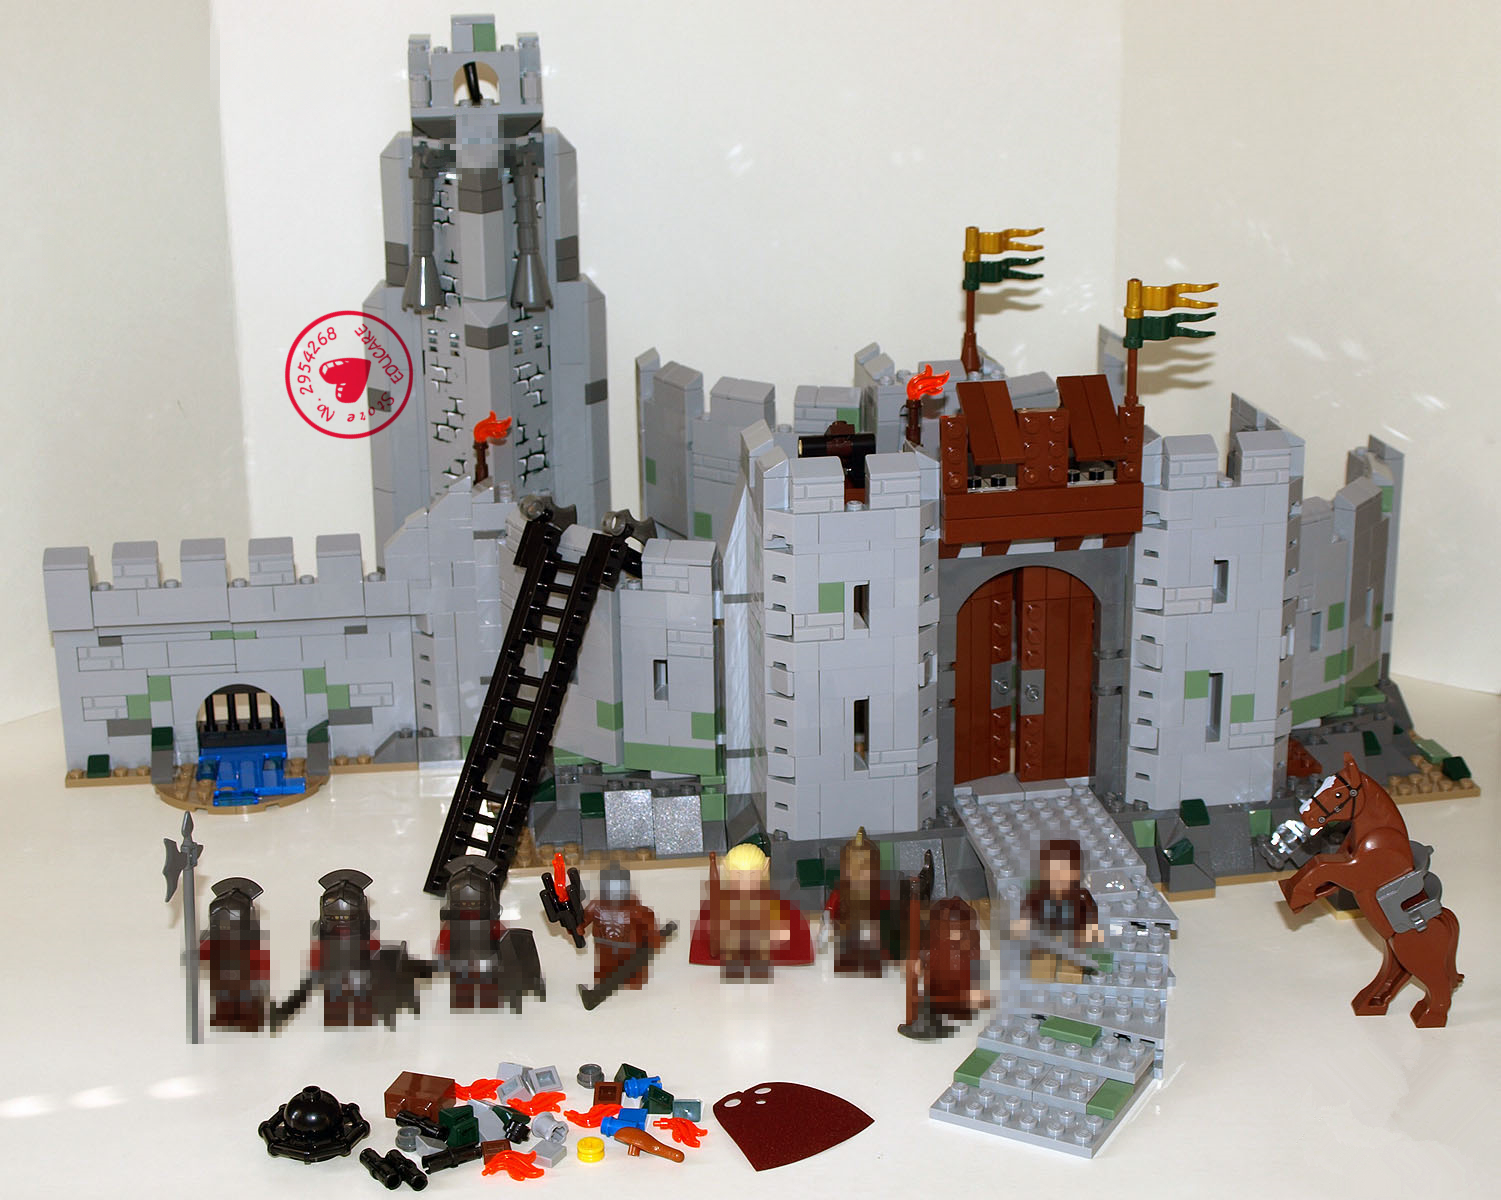 NEW The Lord of the Rings Series Battle Of Helm' Deep Model Building Blocks Bricks 9474 compatiable legoes castle kid gift set jonsbo lord of the rings mod screw set red